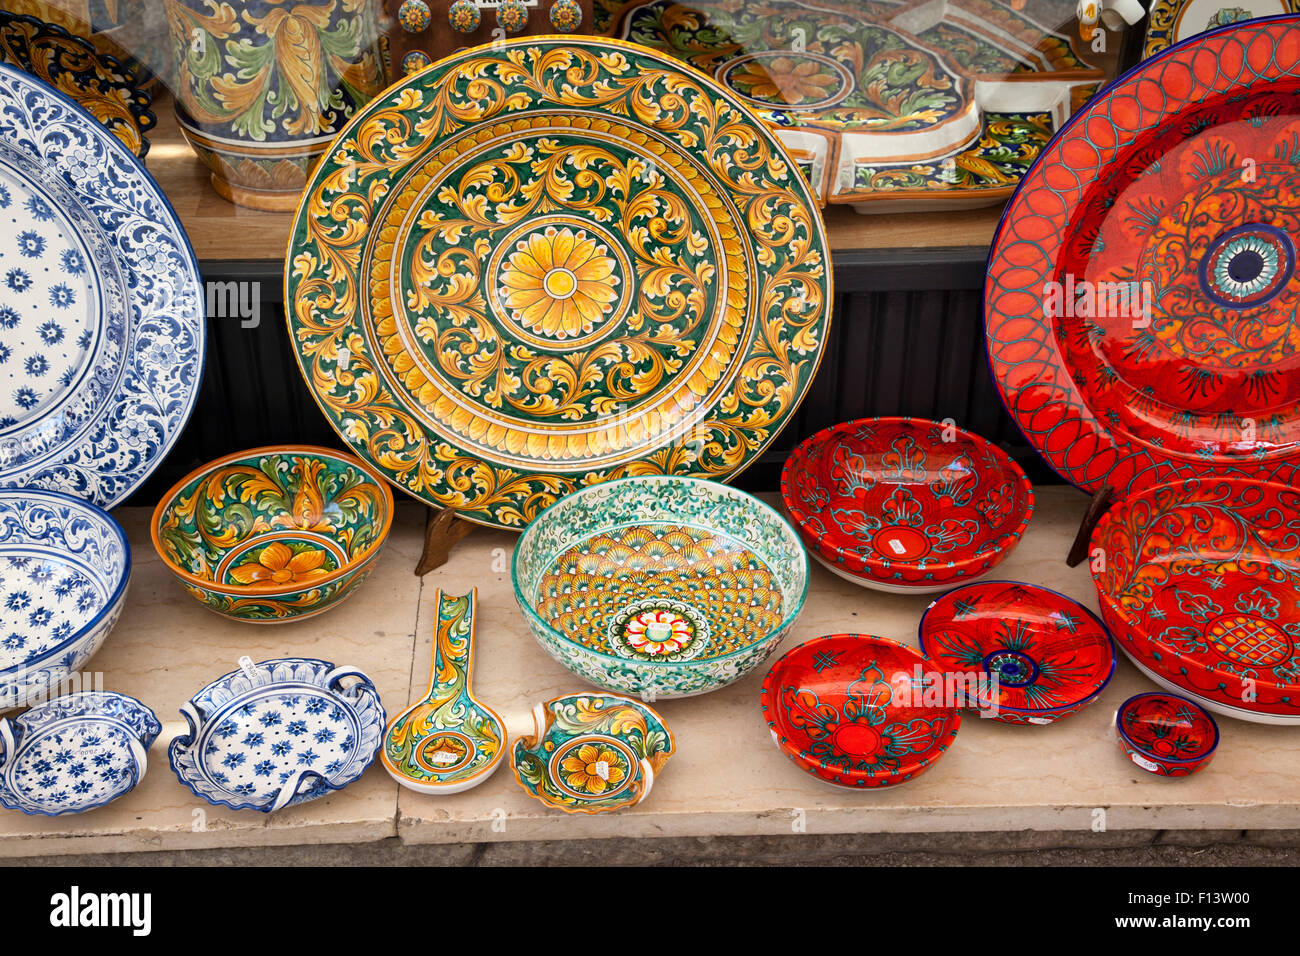 Close Up Of Traditional Decorative Ceramic Plates And Bowls Stock Photo Alamy